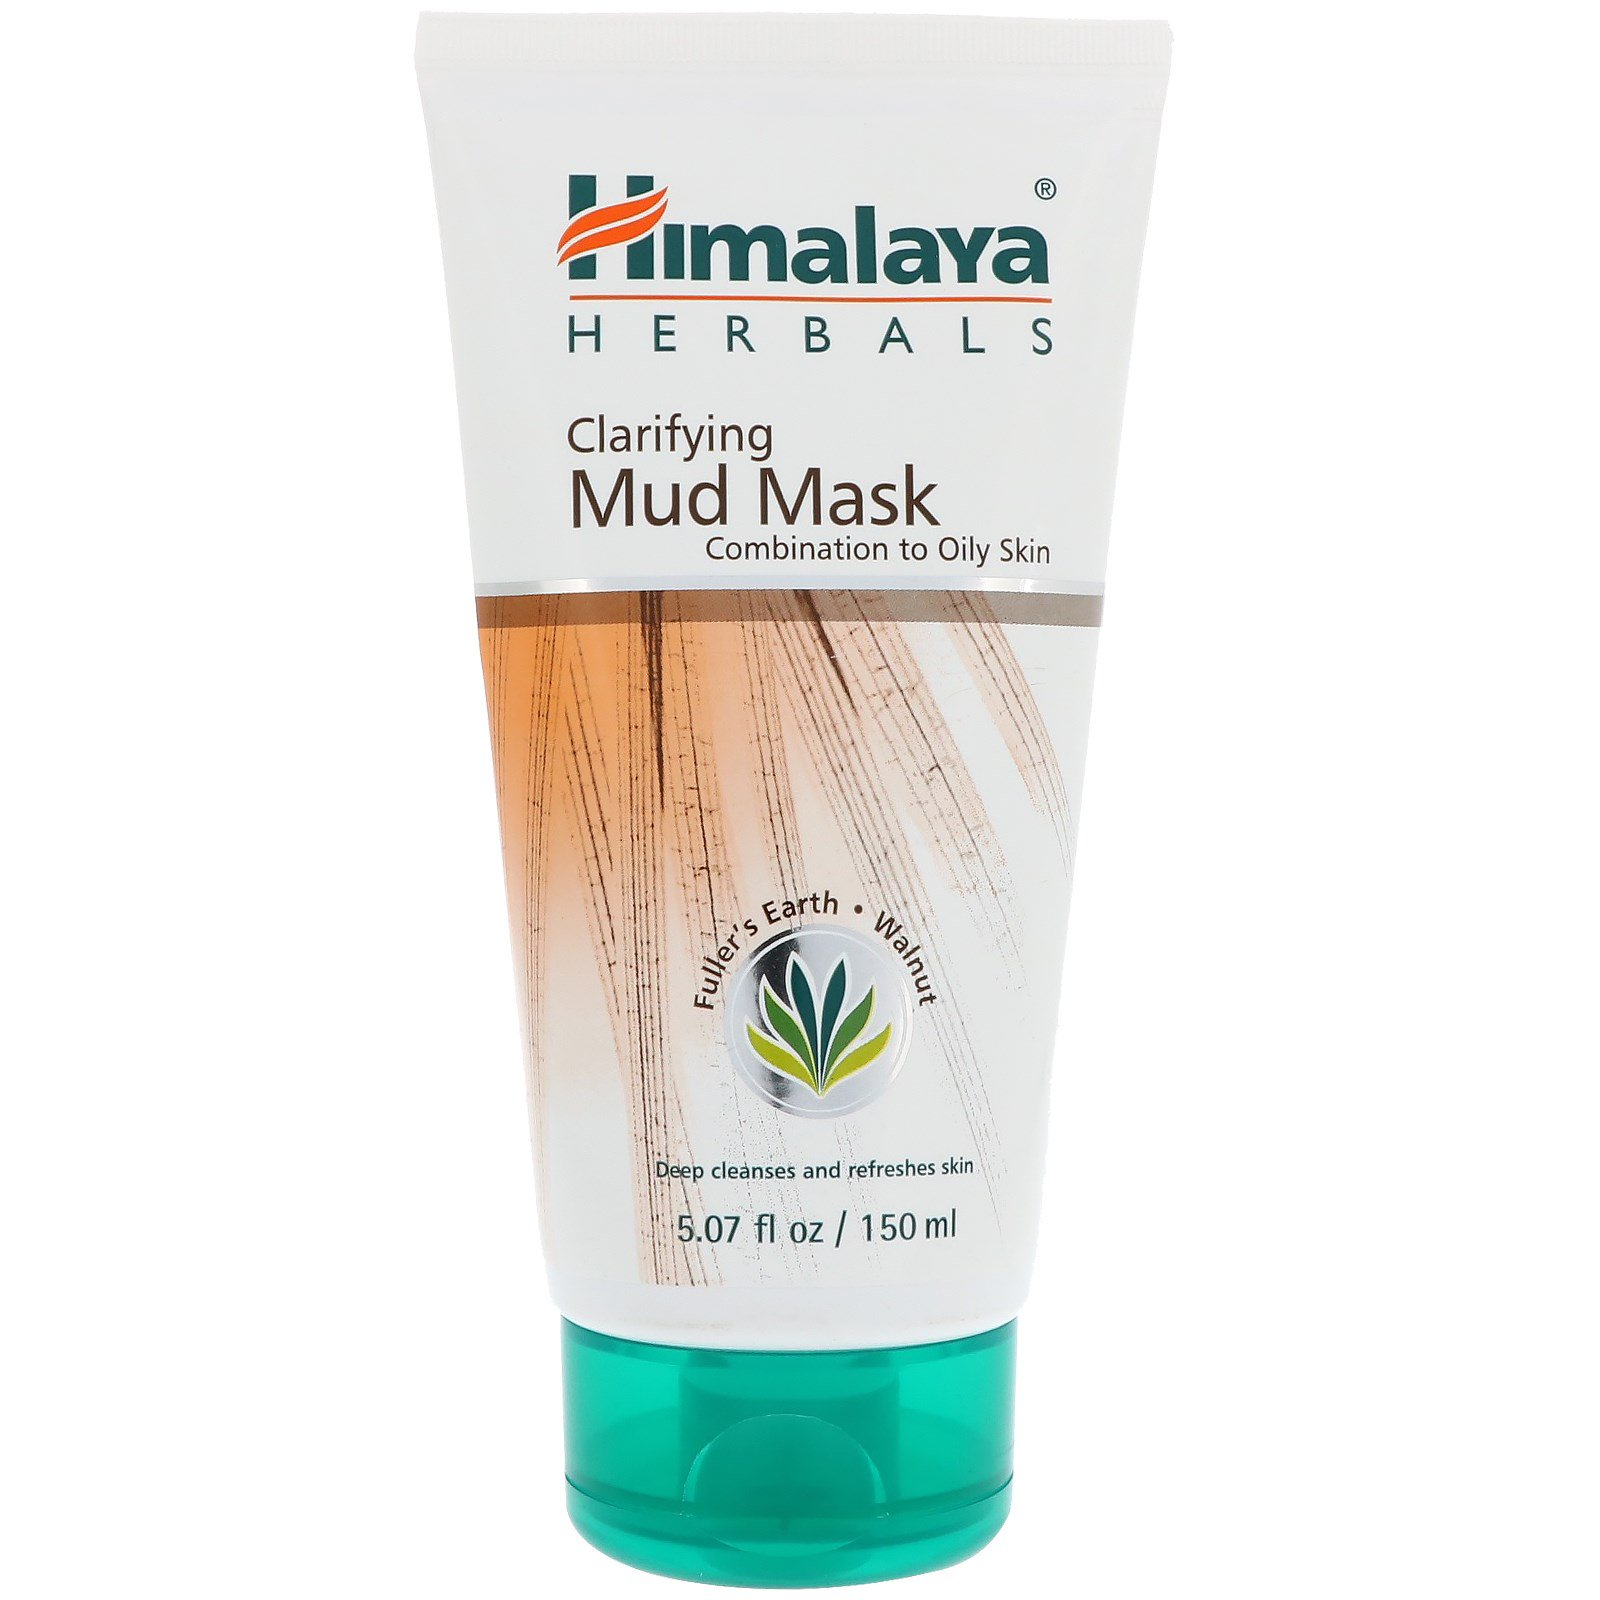 Himalaya, Clarifying Mud Mask, 5.07 fl oz(pack of 2) Hyaluronic Acid Serum